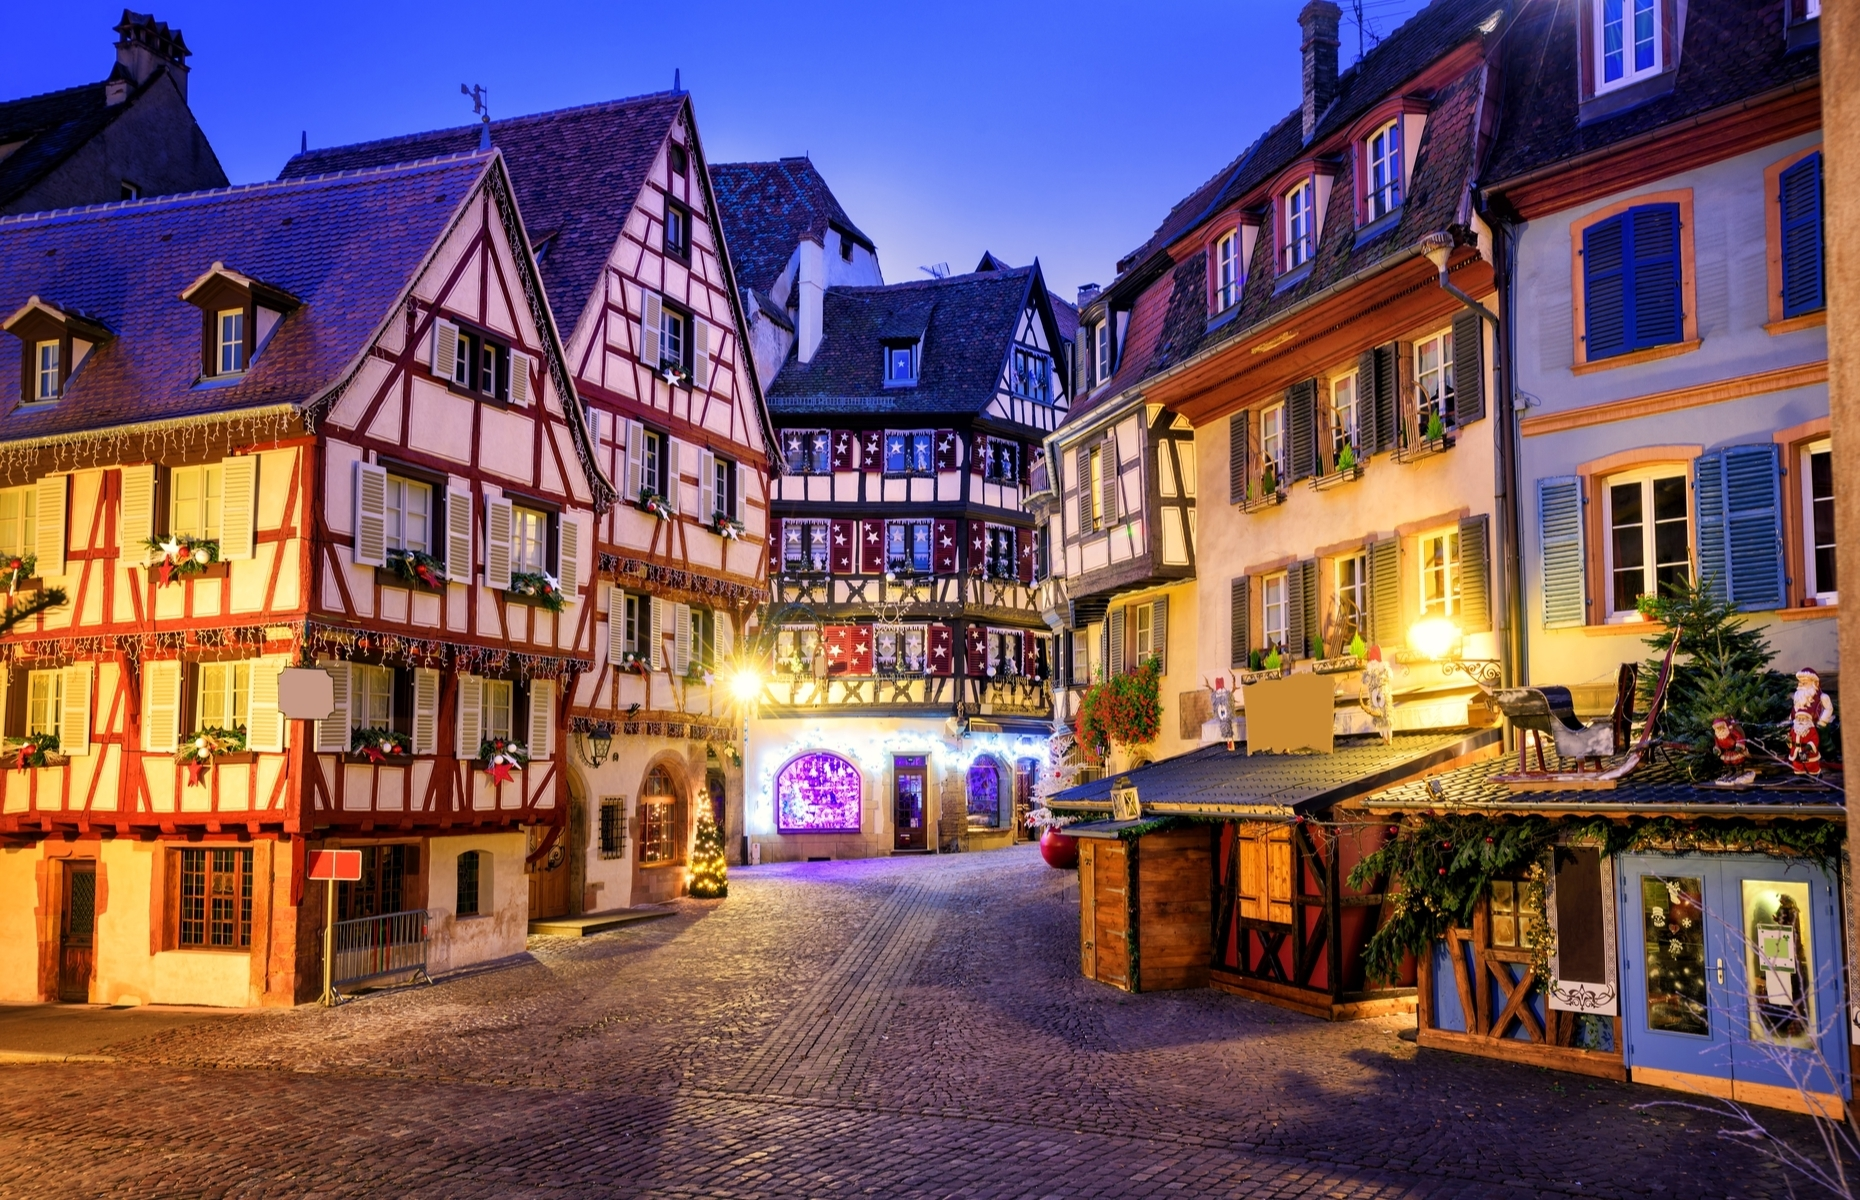 Slide 22 of 41: Belle's home village in the famous animated movie Beauty and the Beast was inspired by villages in Alsace, France.